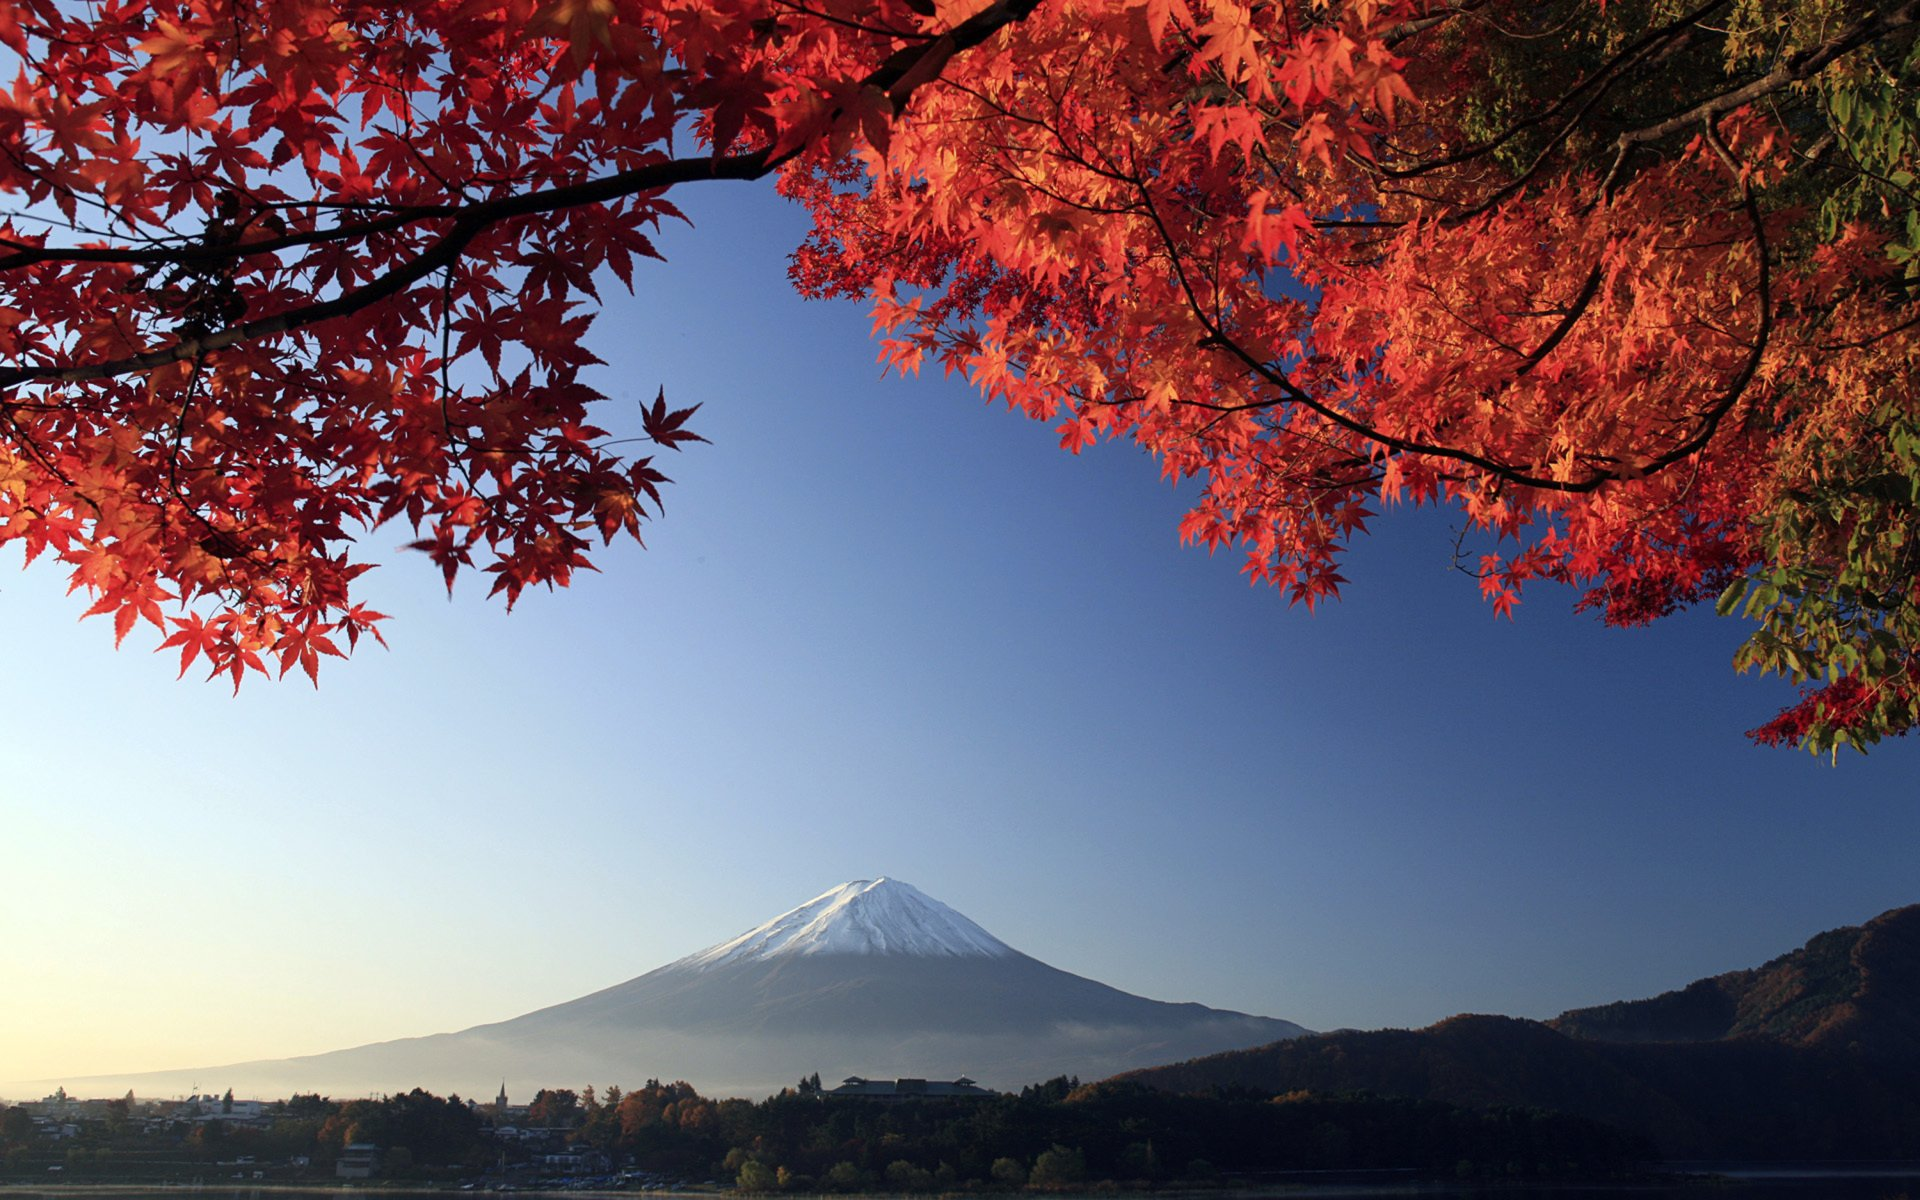 Earth - Mount Fuji  Japan Wallpaper